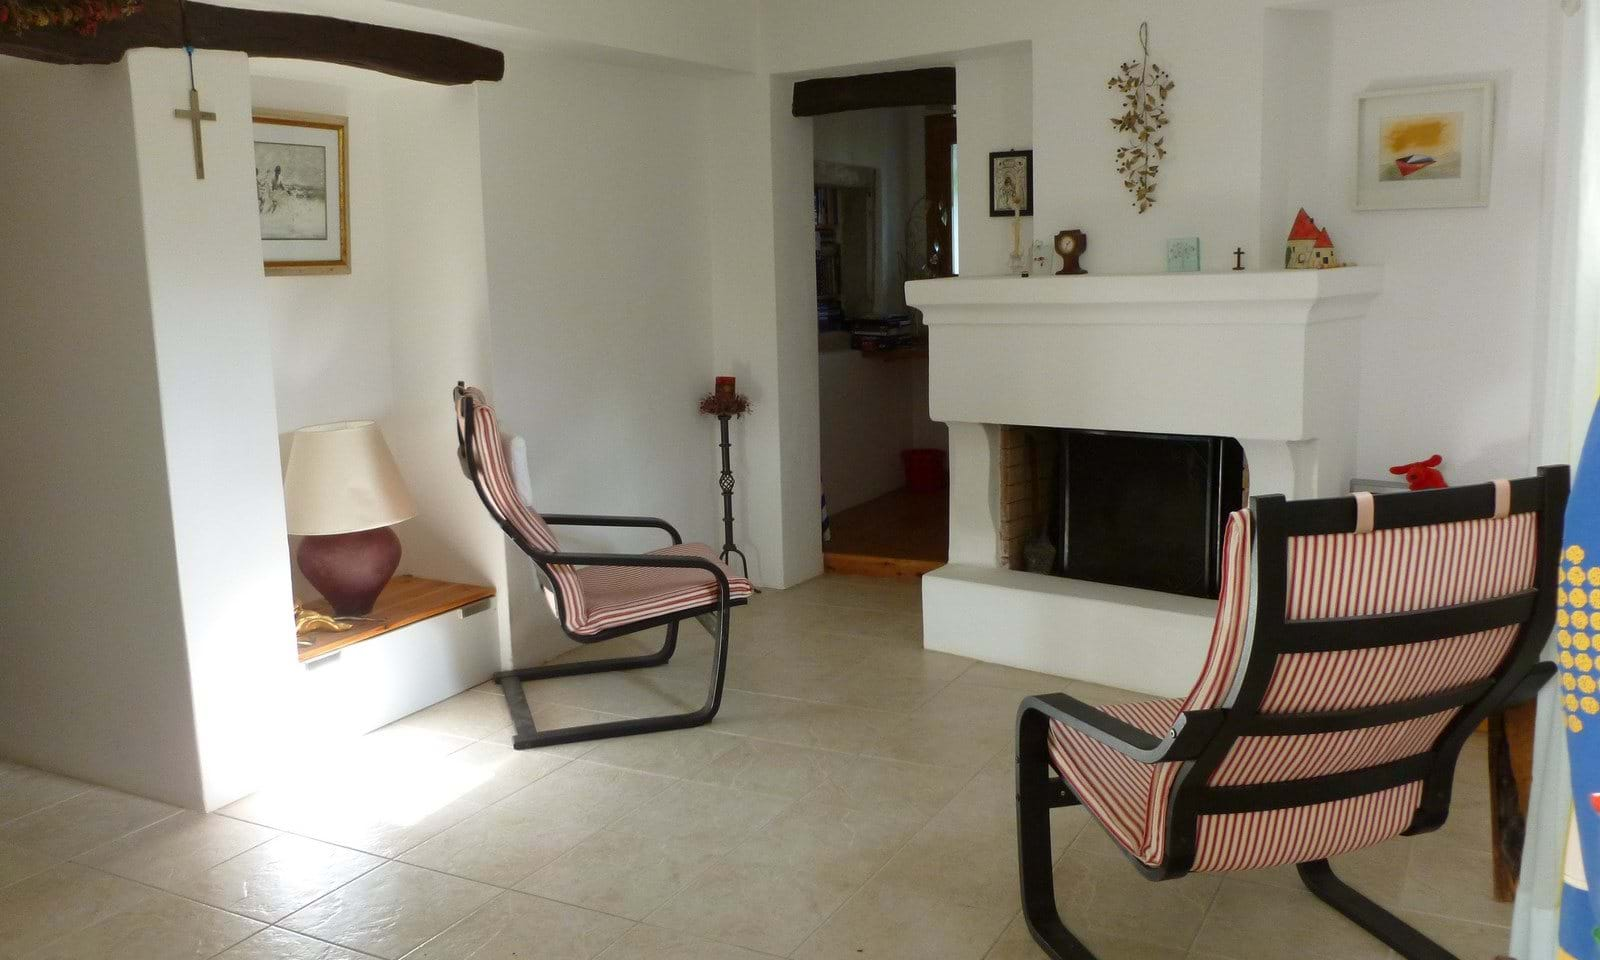 Renovated village houses for sale in Corfu Greece